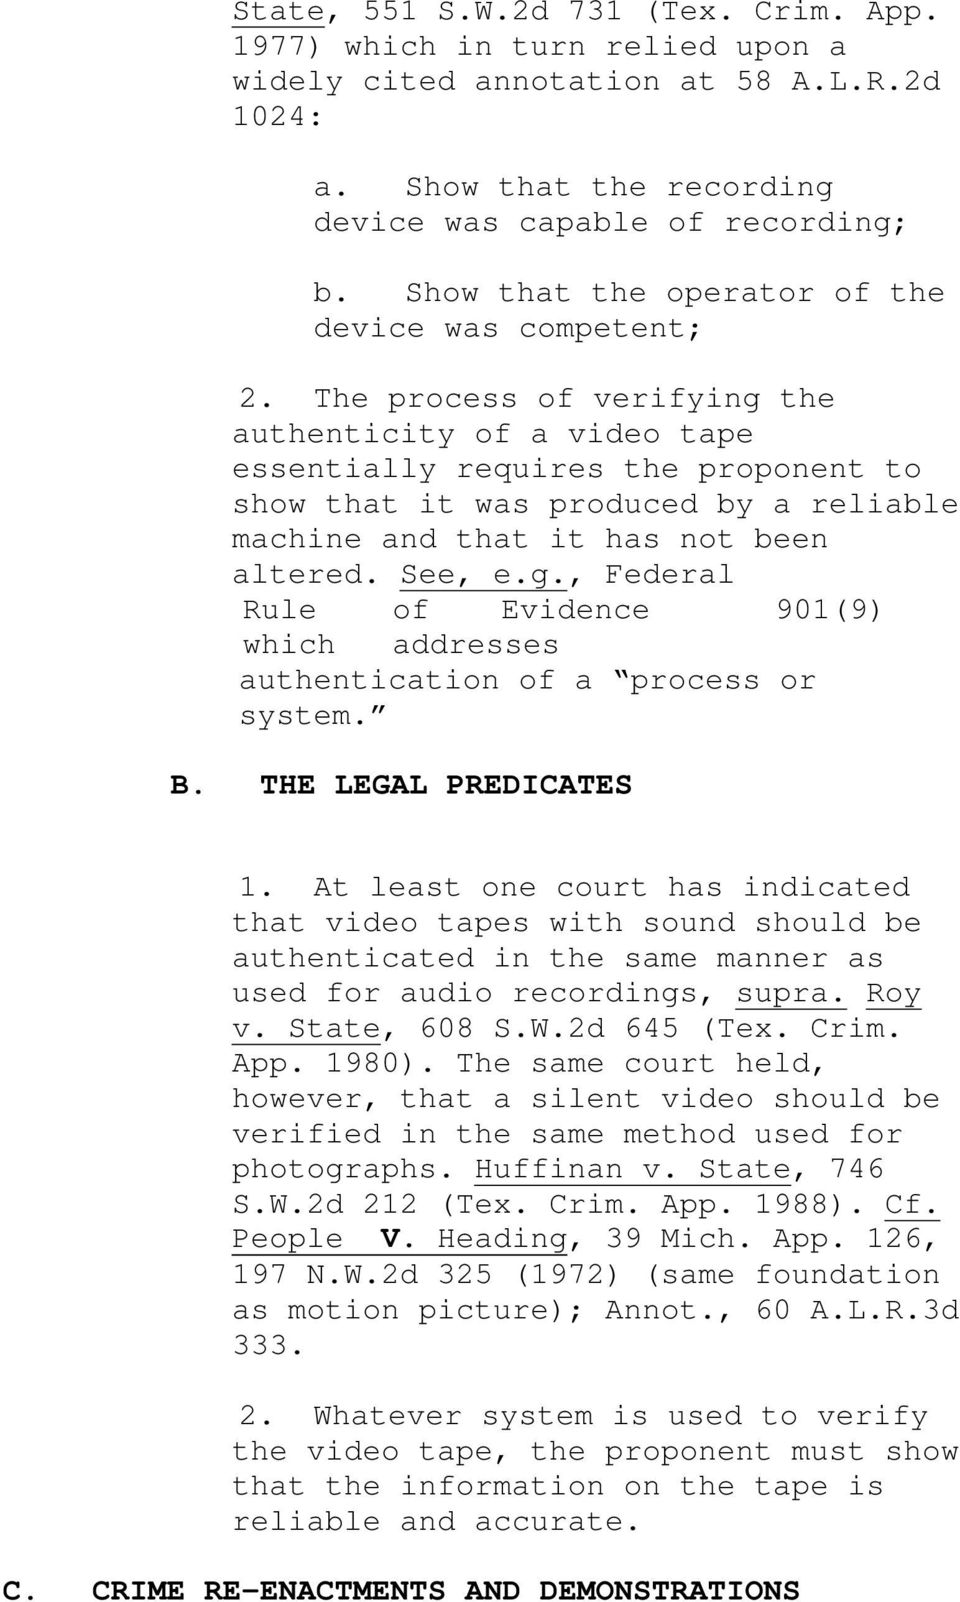 The process of verifying the authenticity of a video tape essentially requires the proponent to show that it was produced by a reliable machine and that it has not been altered. See, e.g., Federal Rule of Evidence 901(9) which addresses authentication of a process or system.